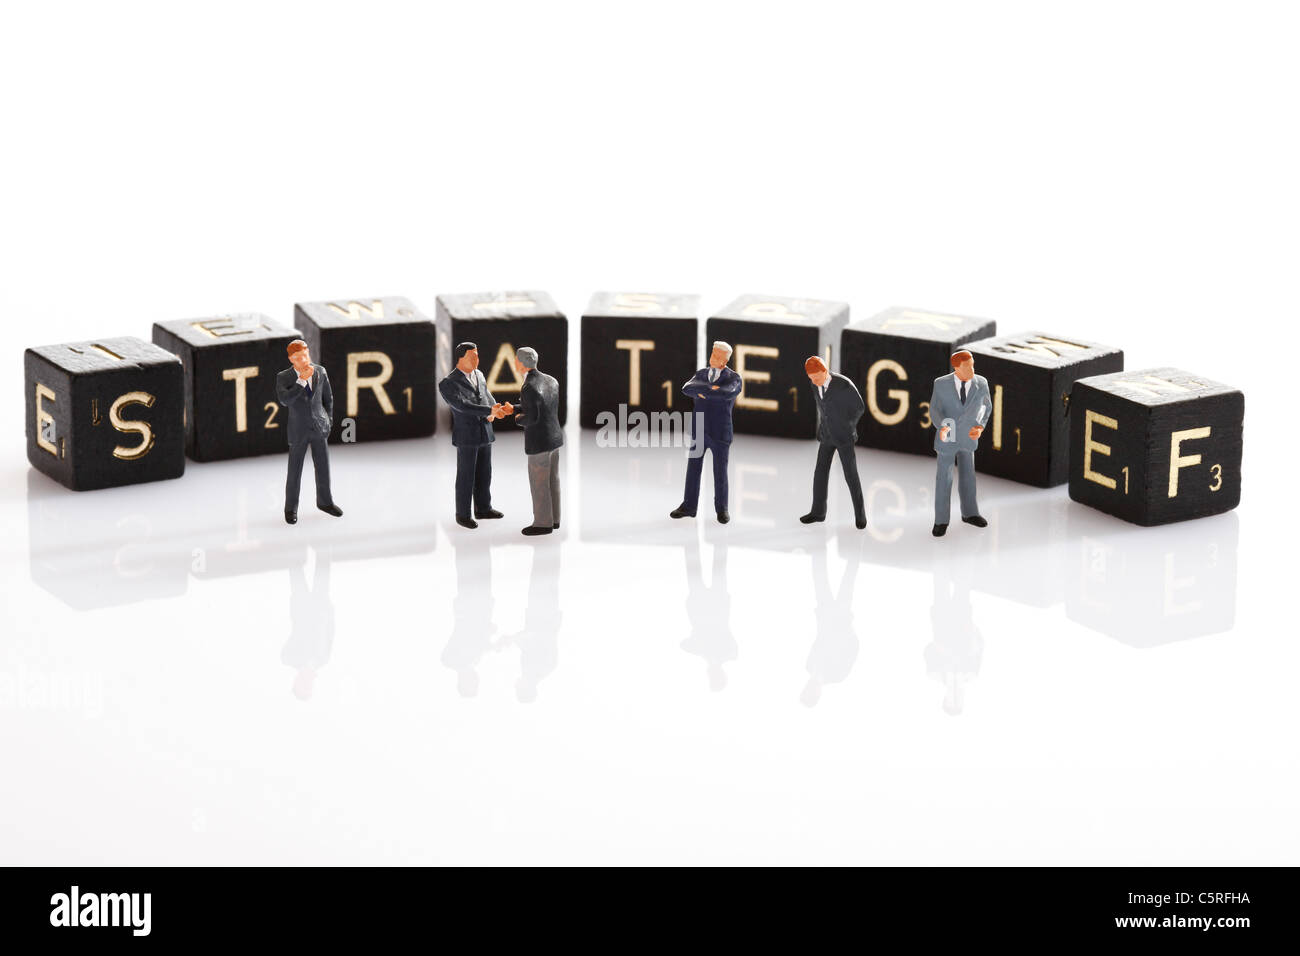 Scrabble tiles forming the single word strategy, in foreground Business men figurines - Stock Image